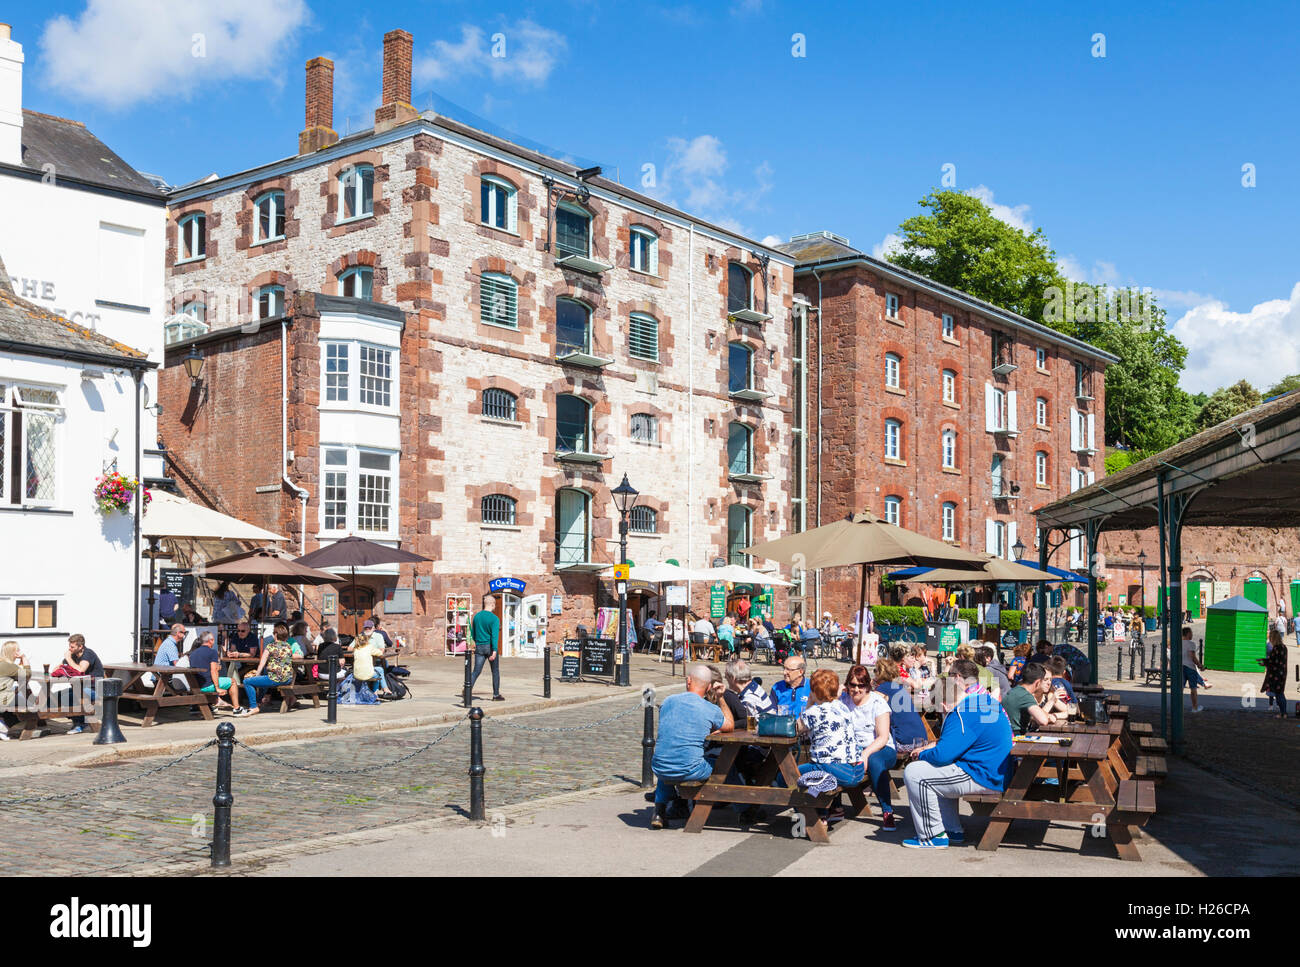 Shops and restaurants at Exeter Quay Exeter Devon England UK GB EU Europe - Stock Image